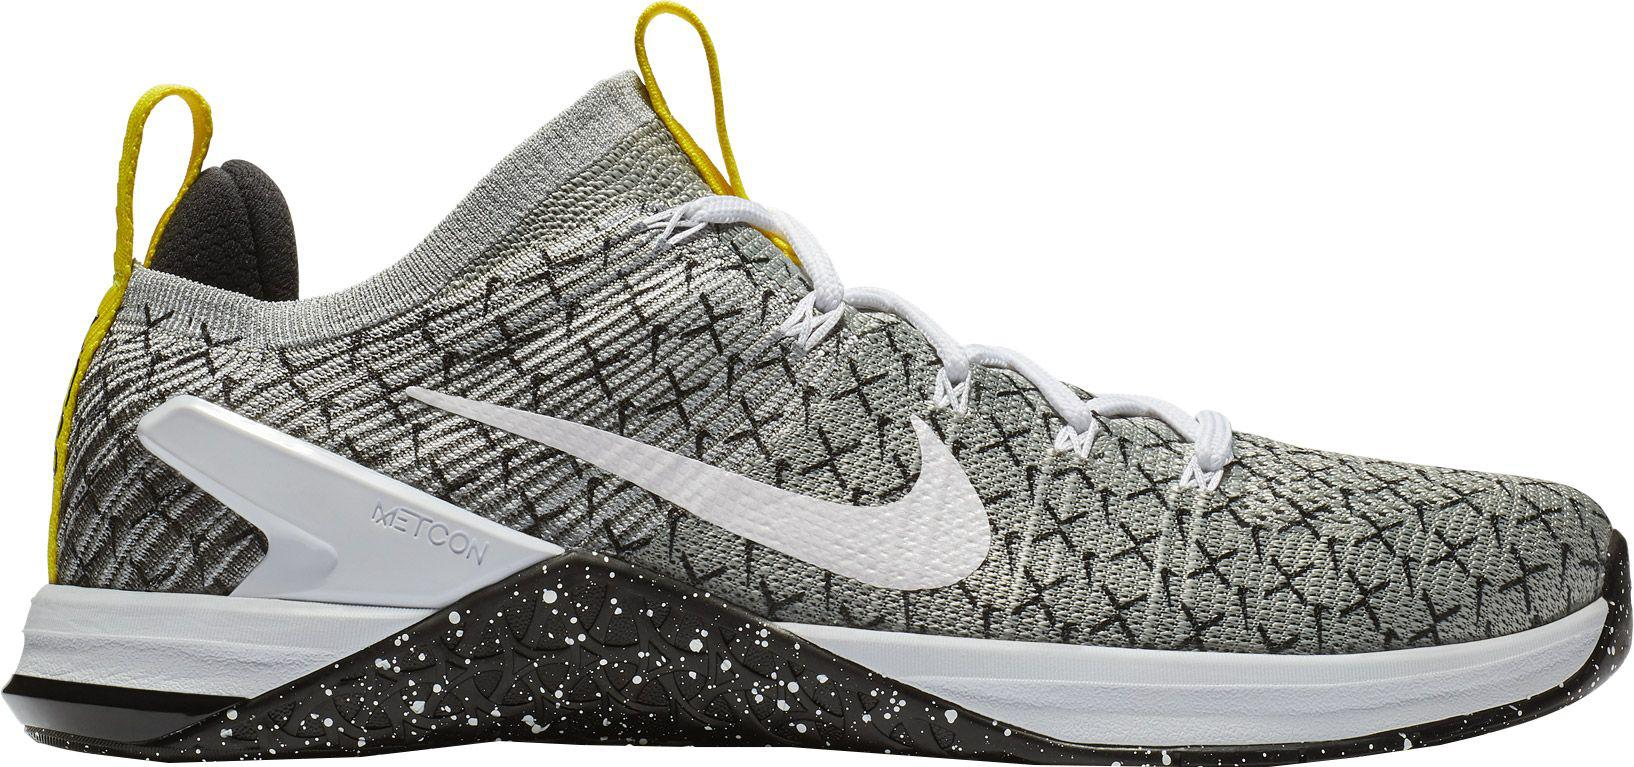 Nike - Multicolor Metcon Dsx Flyknit 2 X Training Shoes for Men - Lyst 816c41bd3